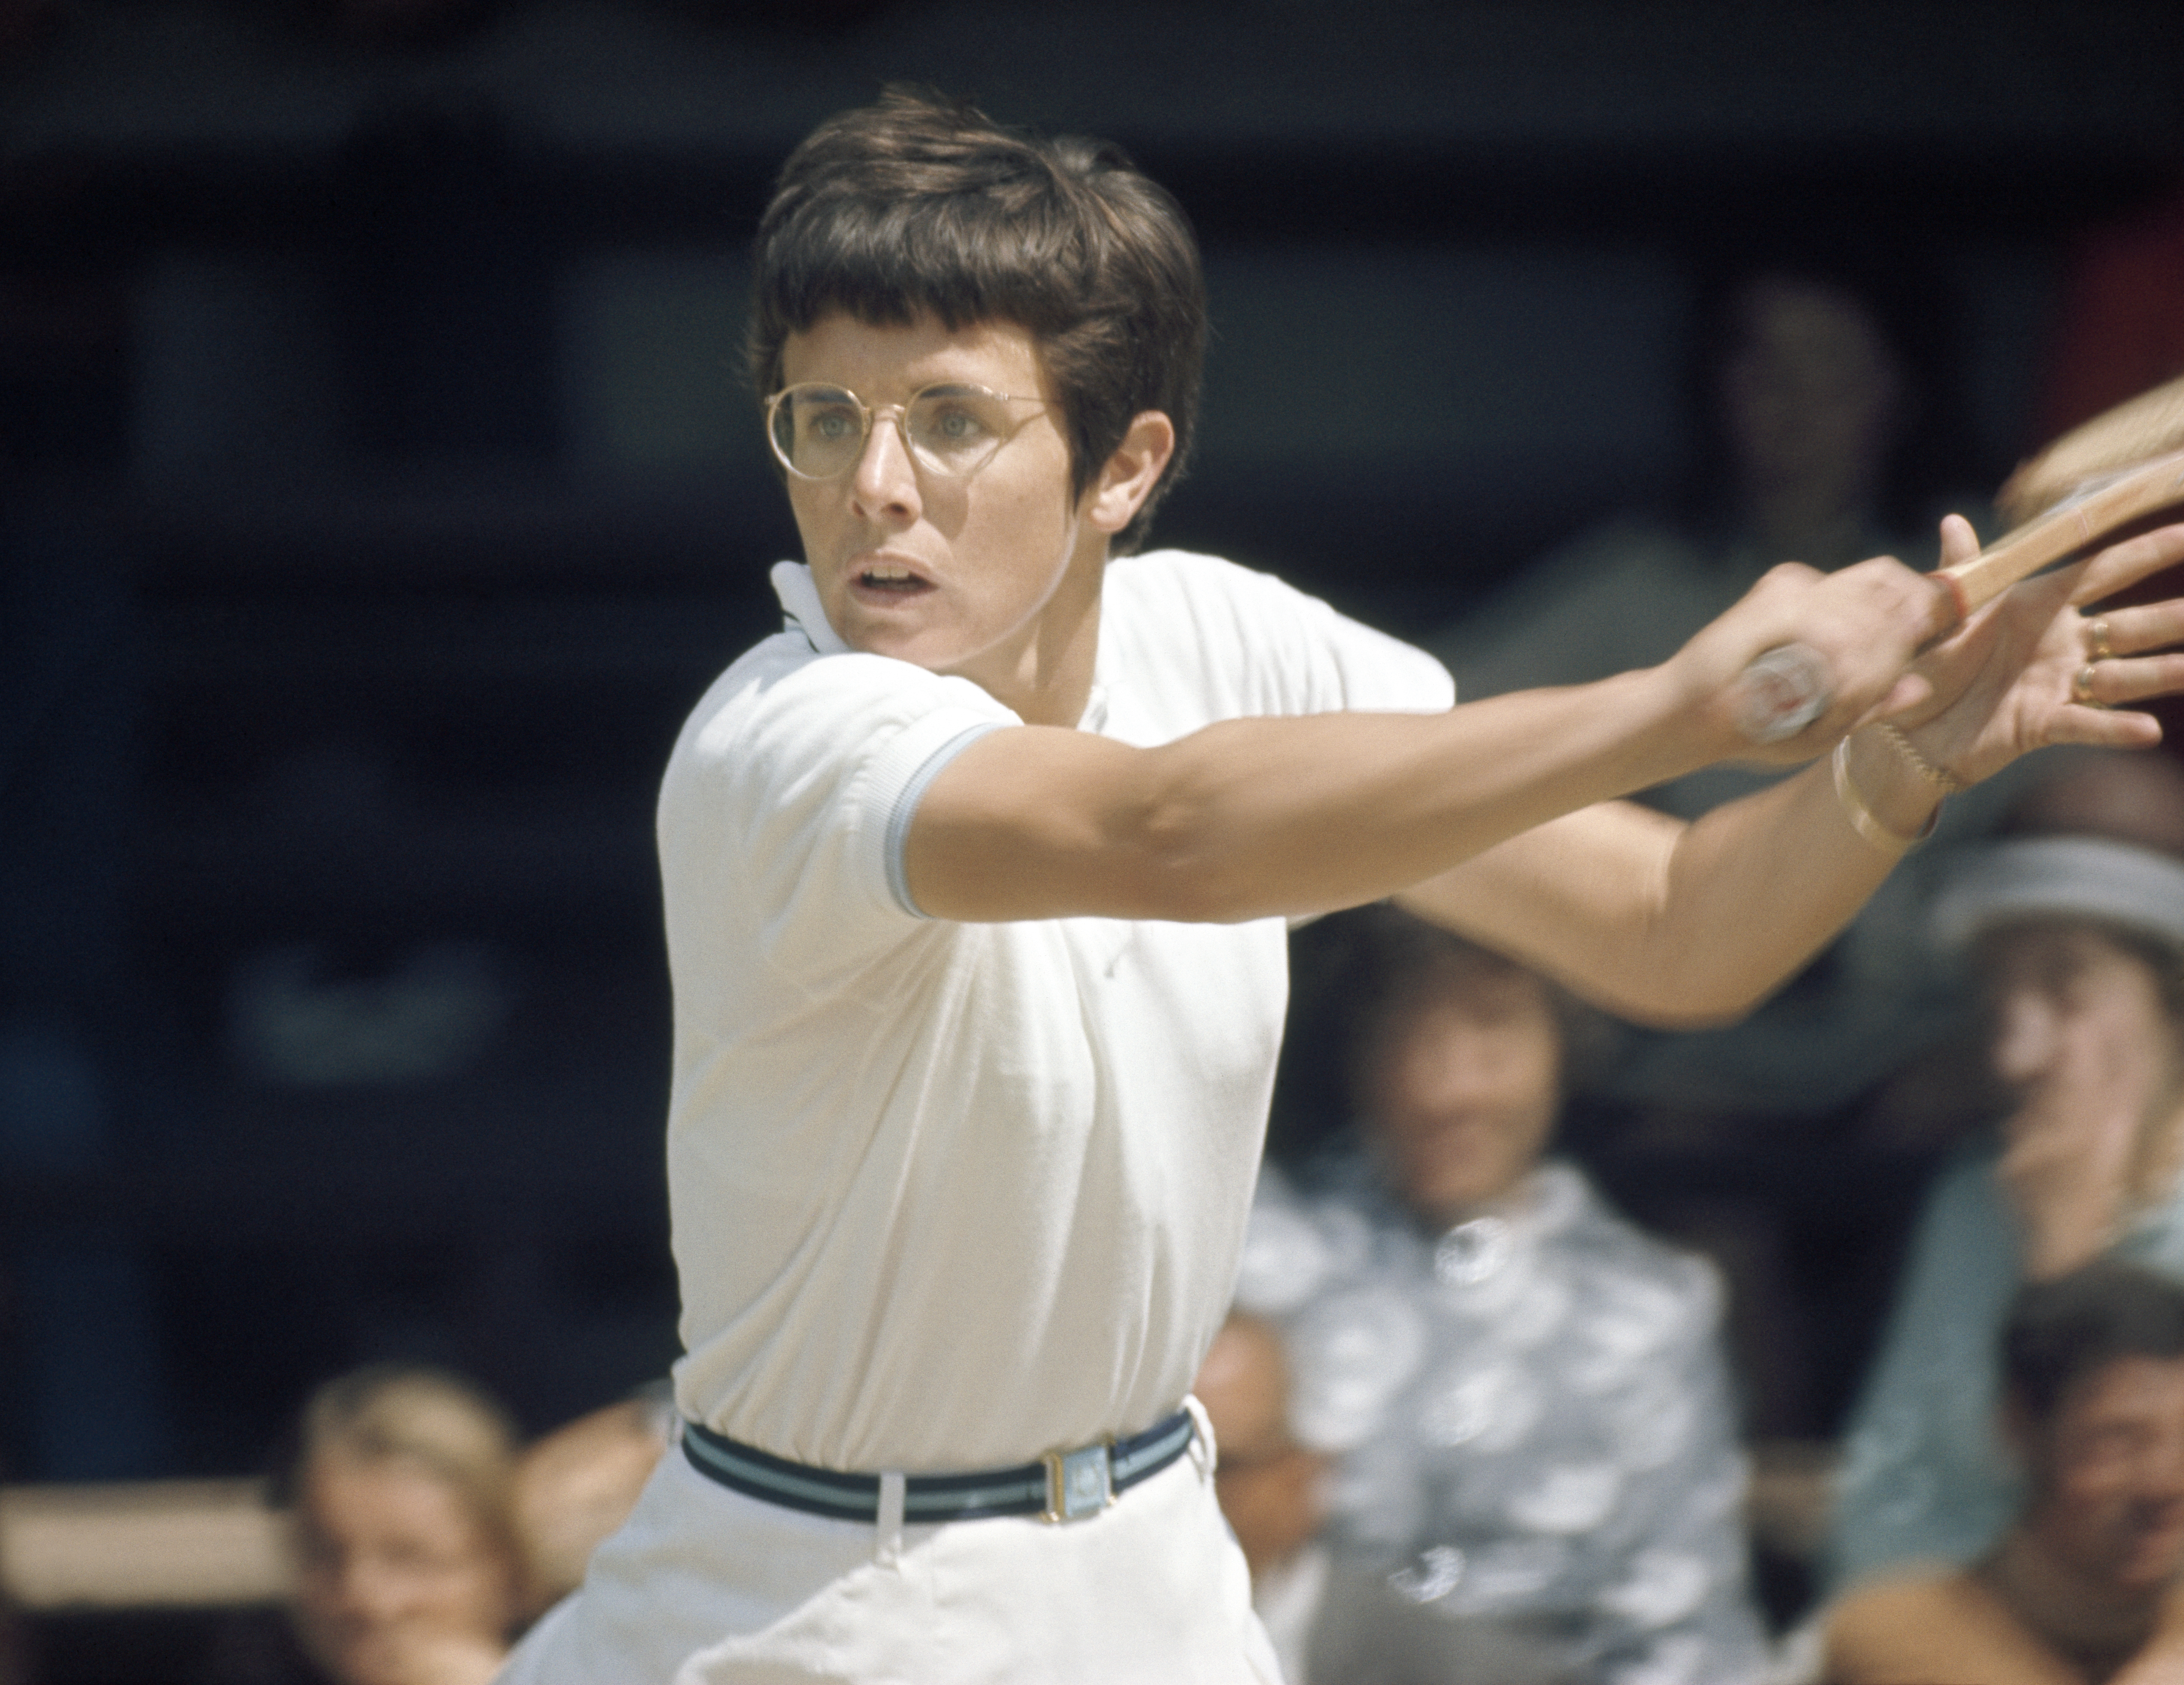 <b>Billie Jean King</b> After winning Wimbledon in 1968, the men's champion, Rod Laver, walked away with $4,800. Billie Jean King, the women's champion, left with just $1,800. At other events, the gap in pay was even wider. King — who won 129 career titles, including 12 Grand Slam single titles — fought to change that.